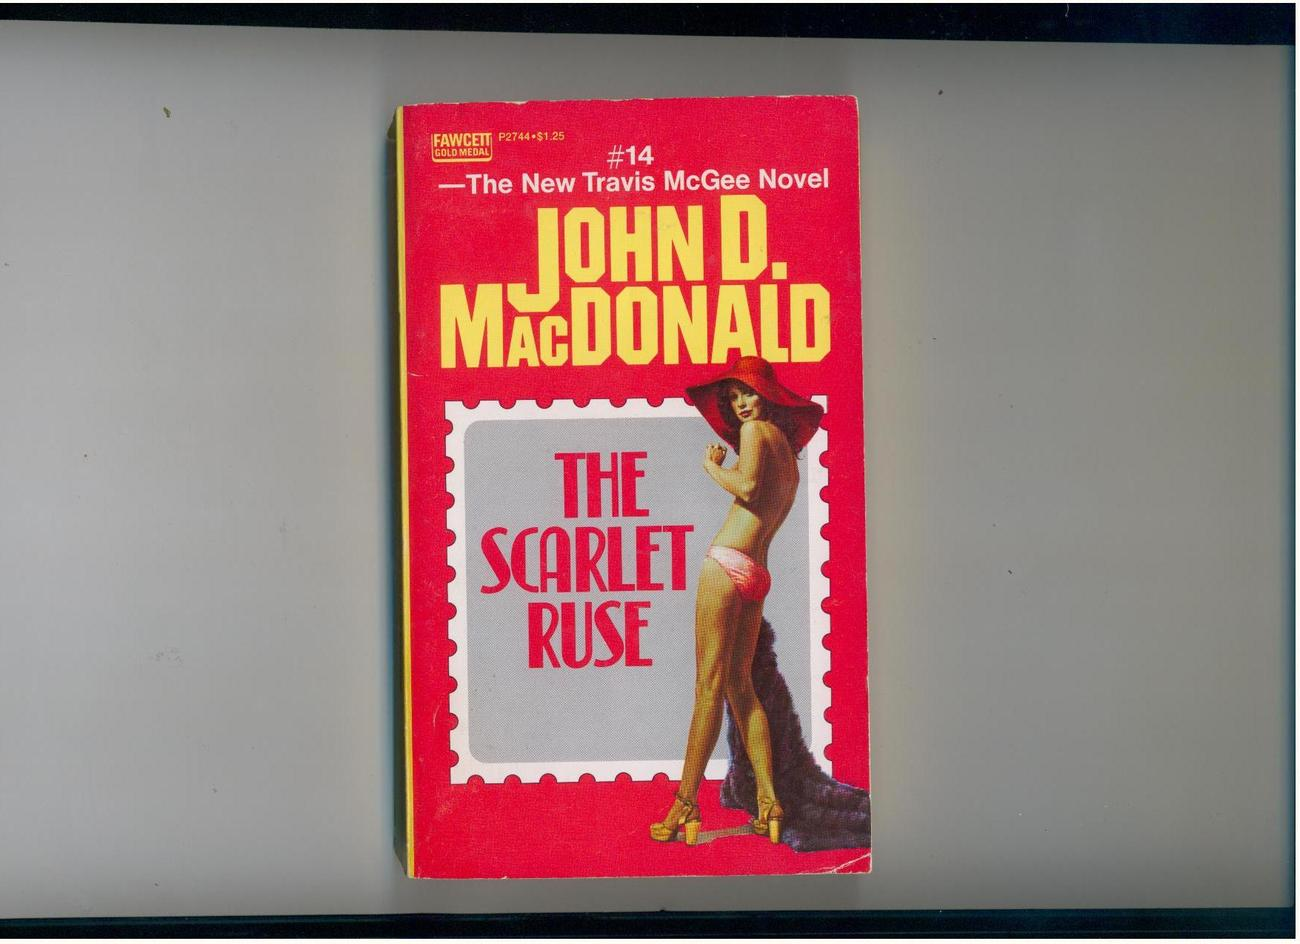 MacDonald--THE SCARLET RUSE--1973--1st printing-T. McGee #14